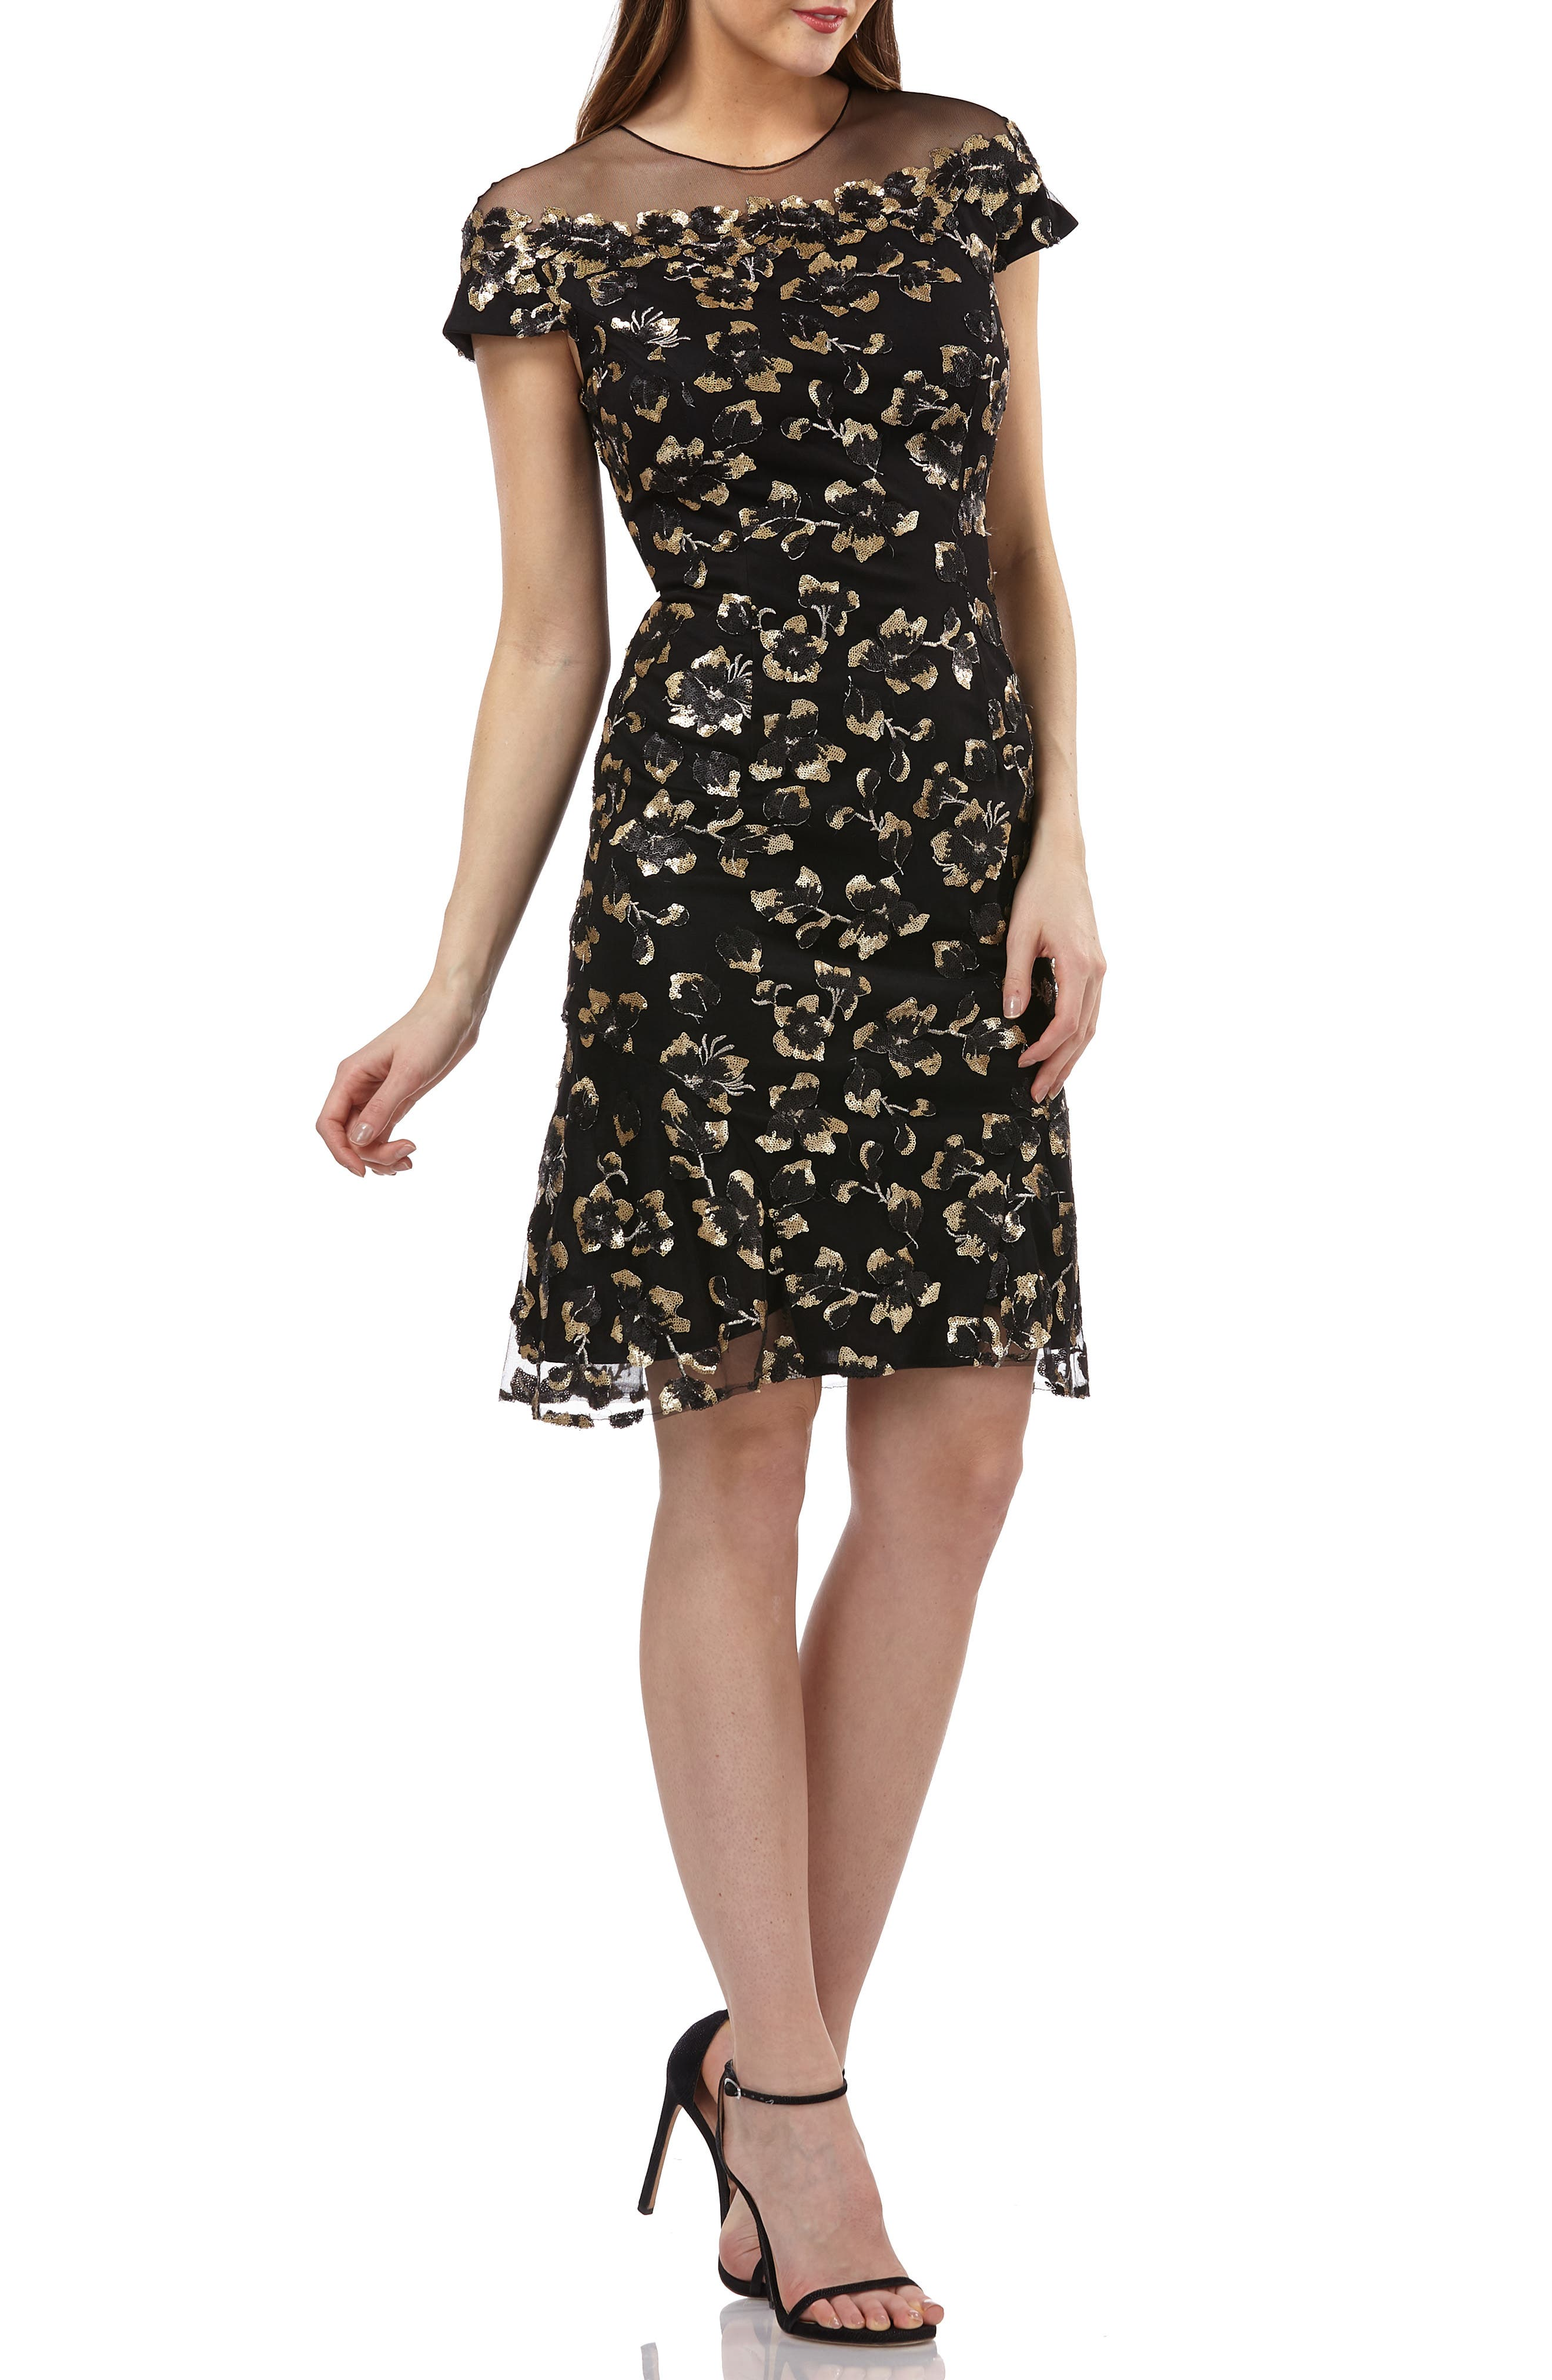 CARMEN MARC VALVO INFUSION Sequin Floral Illusion Yoke Cocktail Dress in Black/ Gold